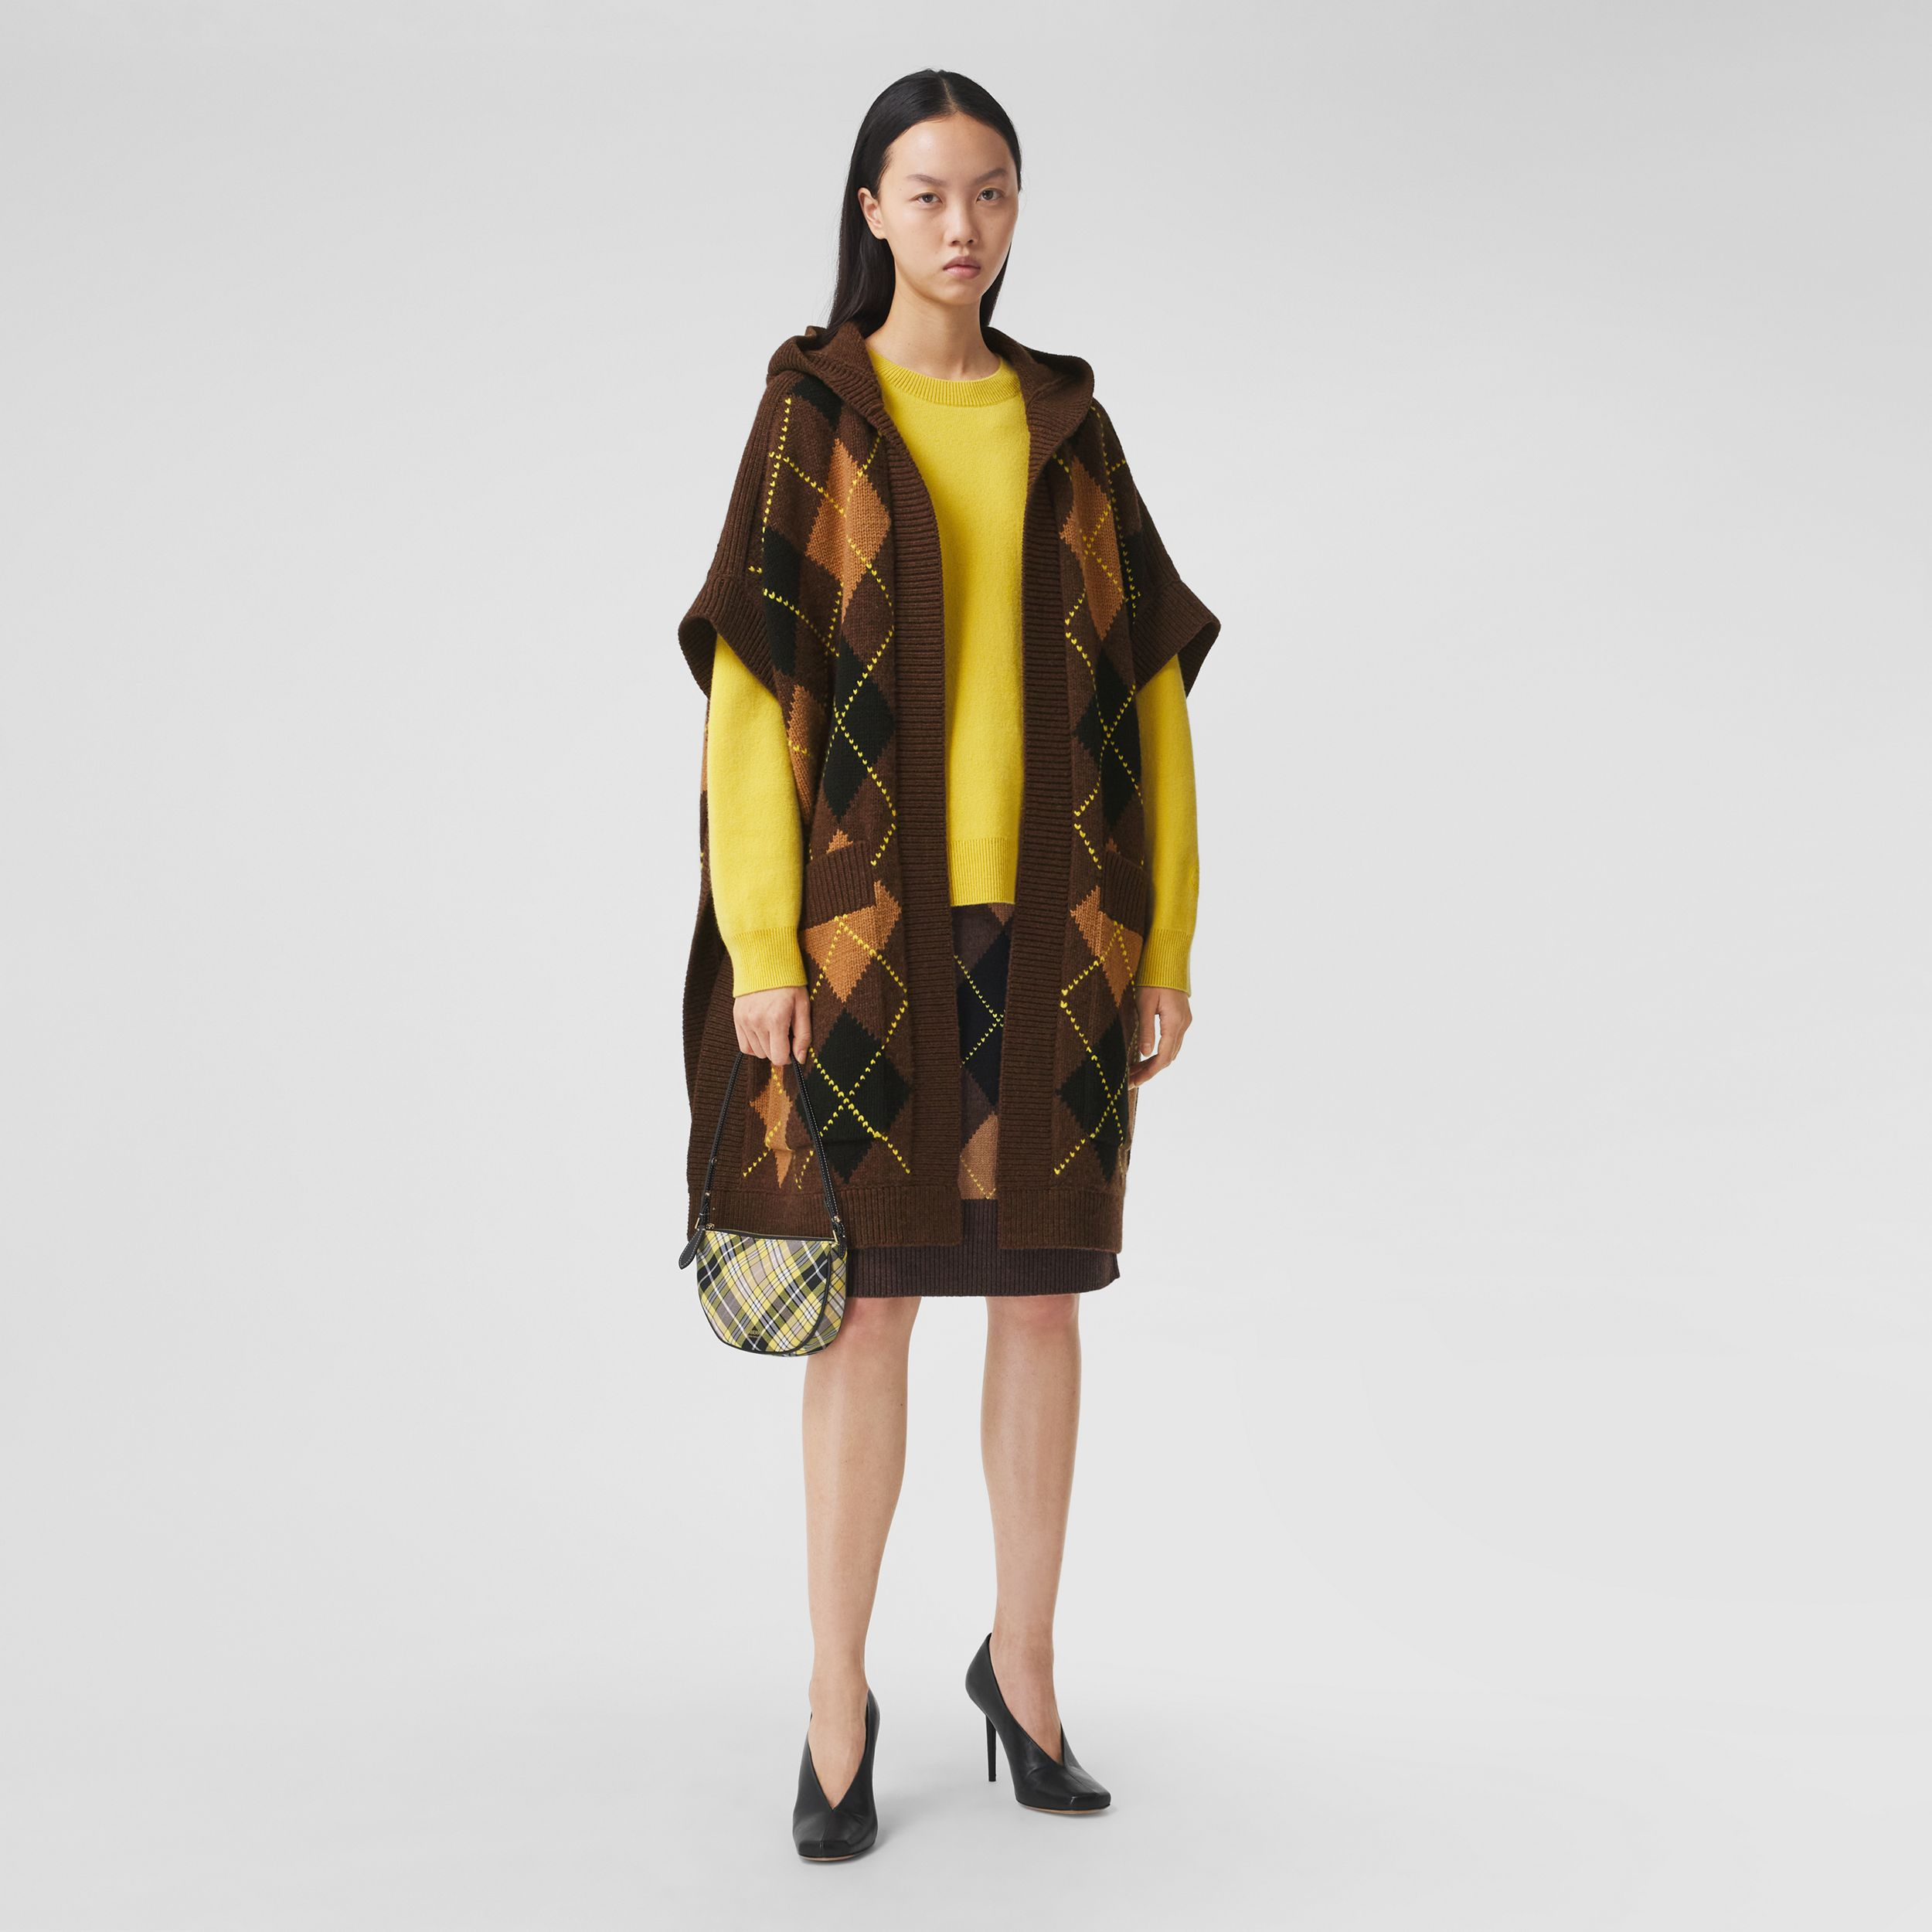 Argyle Intarsia Wool Cashmere Hooded Cape in Brown - Women | Burberry Hong Kong S.A.R. - 1